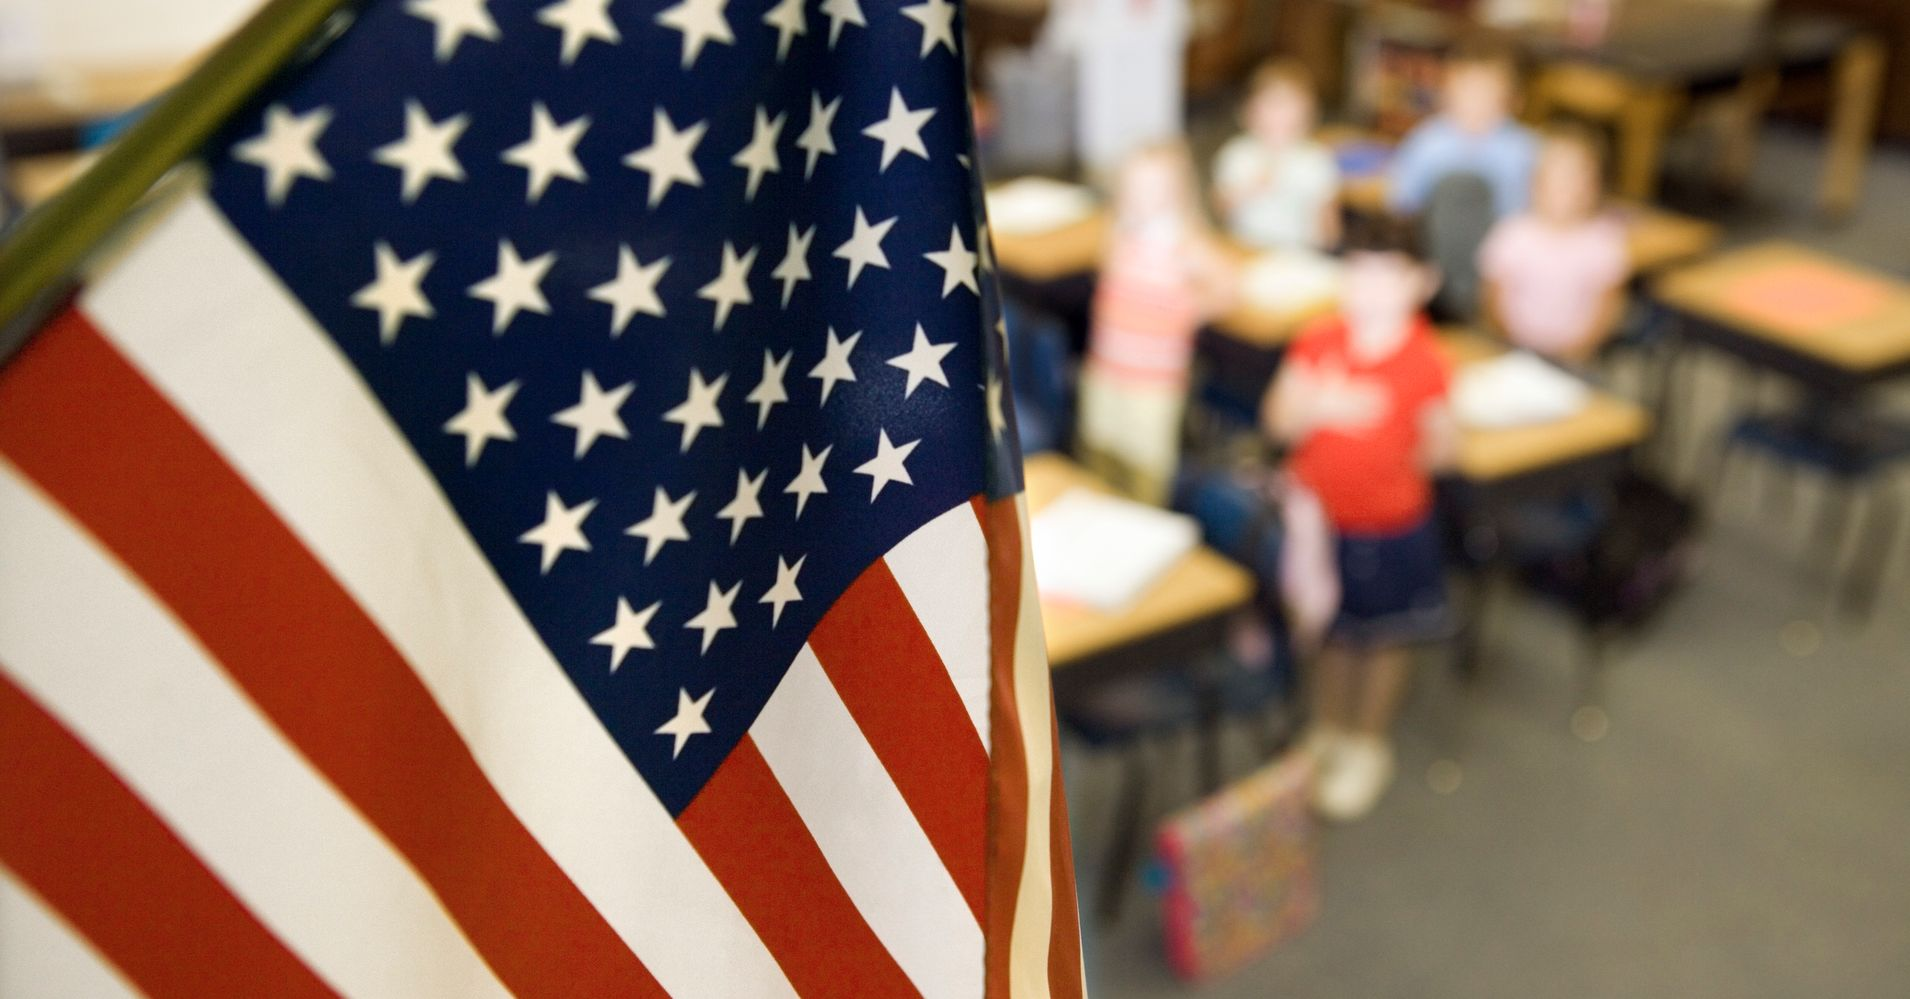 11-Year-Old Arrested At School After Refusing To Stand For The Pledge